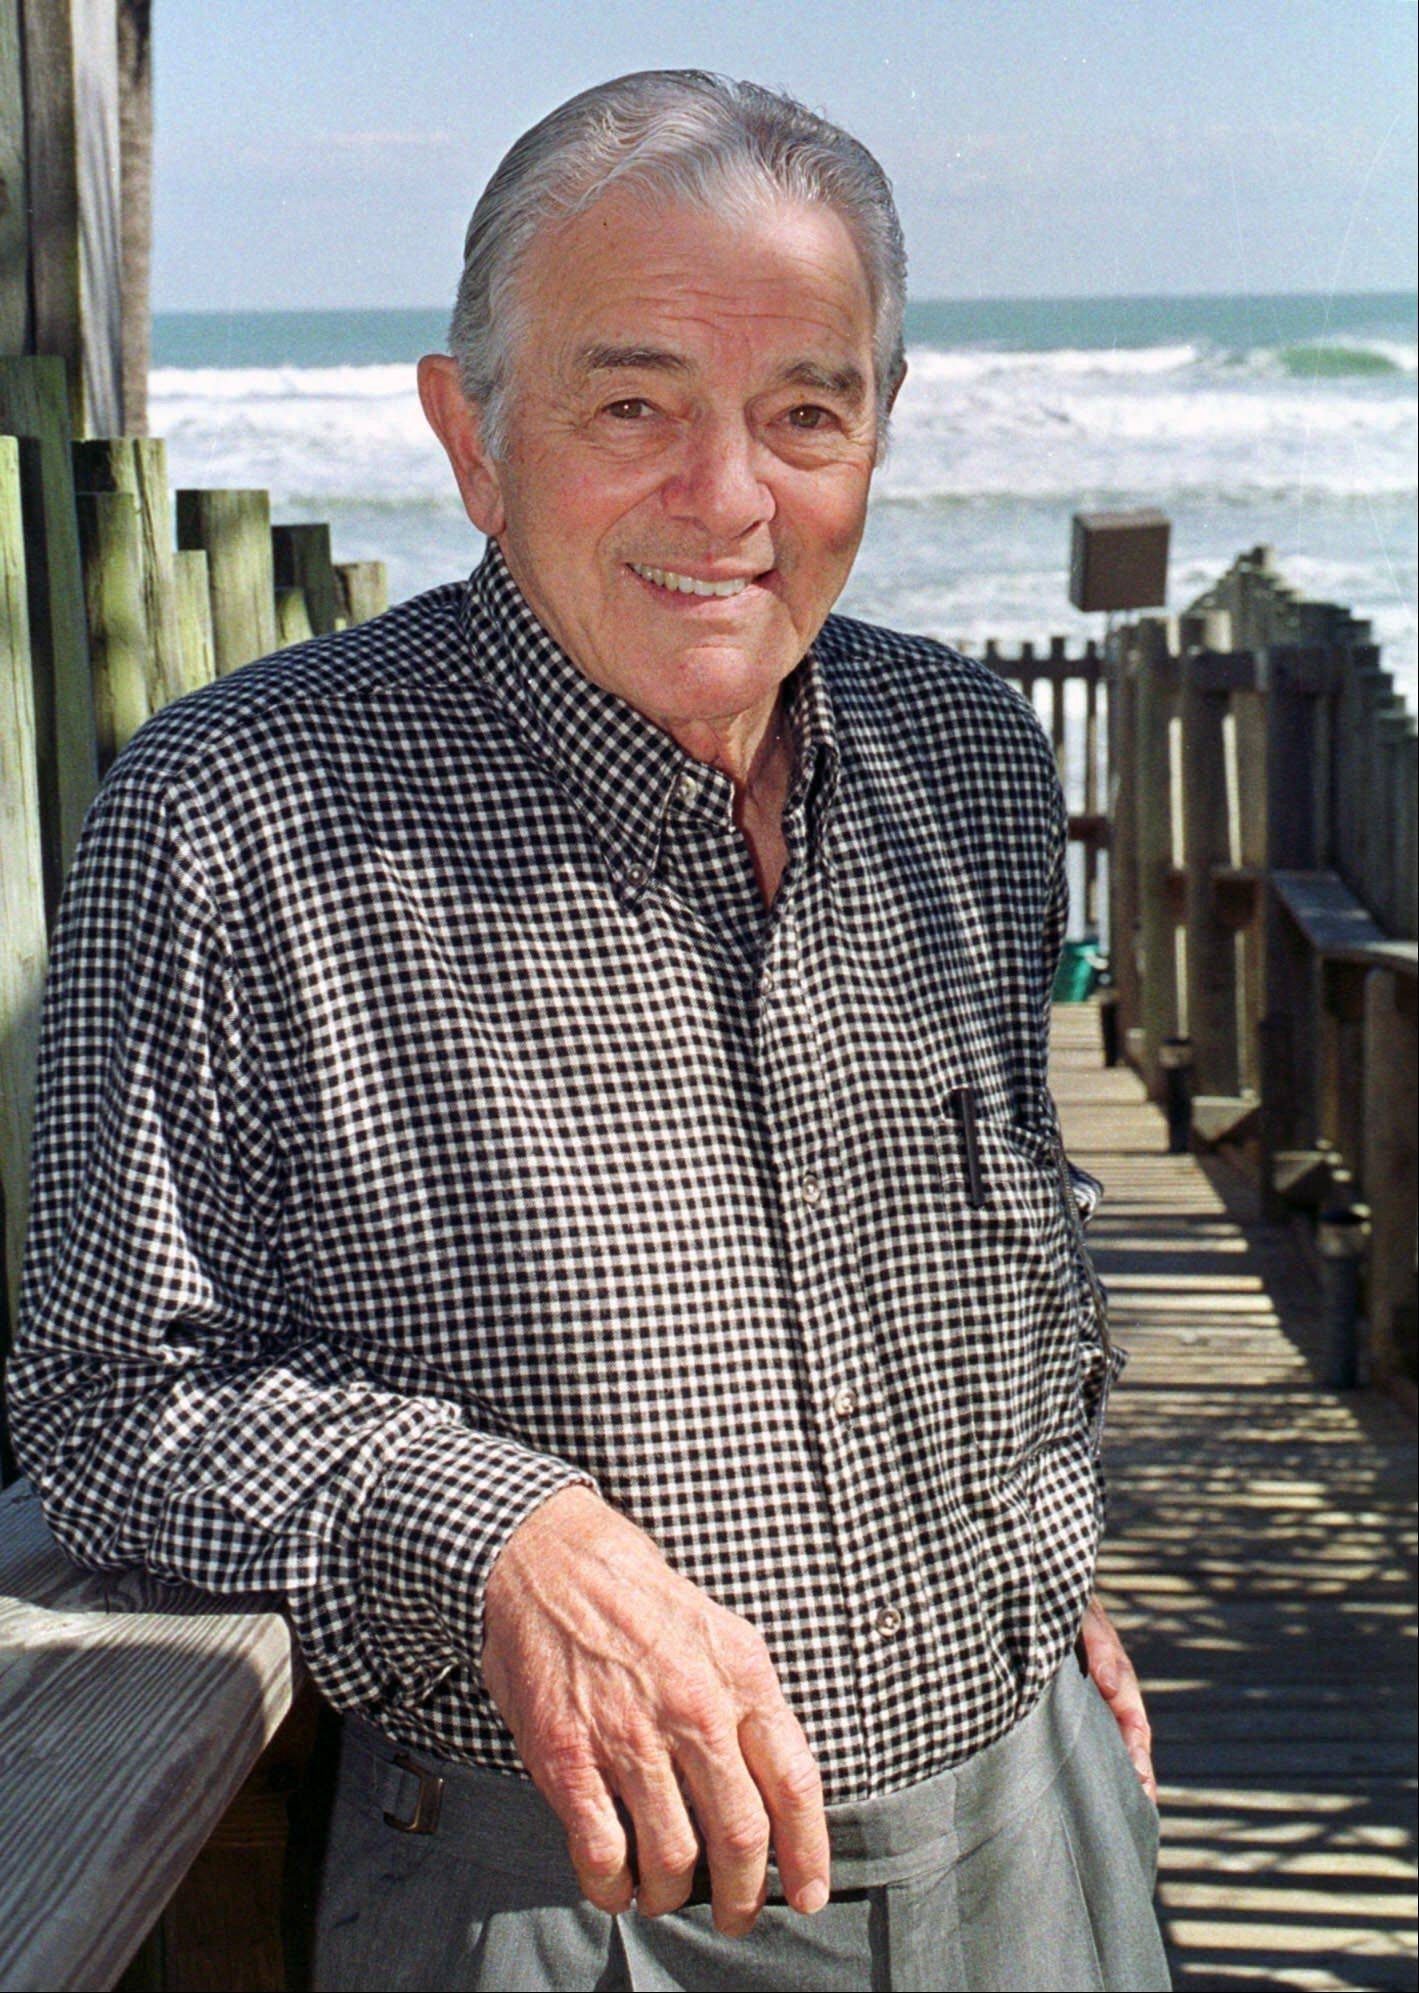 Al Neuharth, founder of USA Today, poses at his home in Cocoa Beach, Fla.